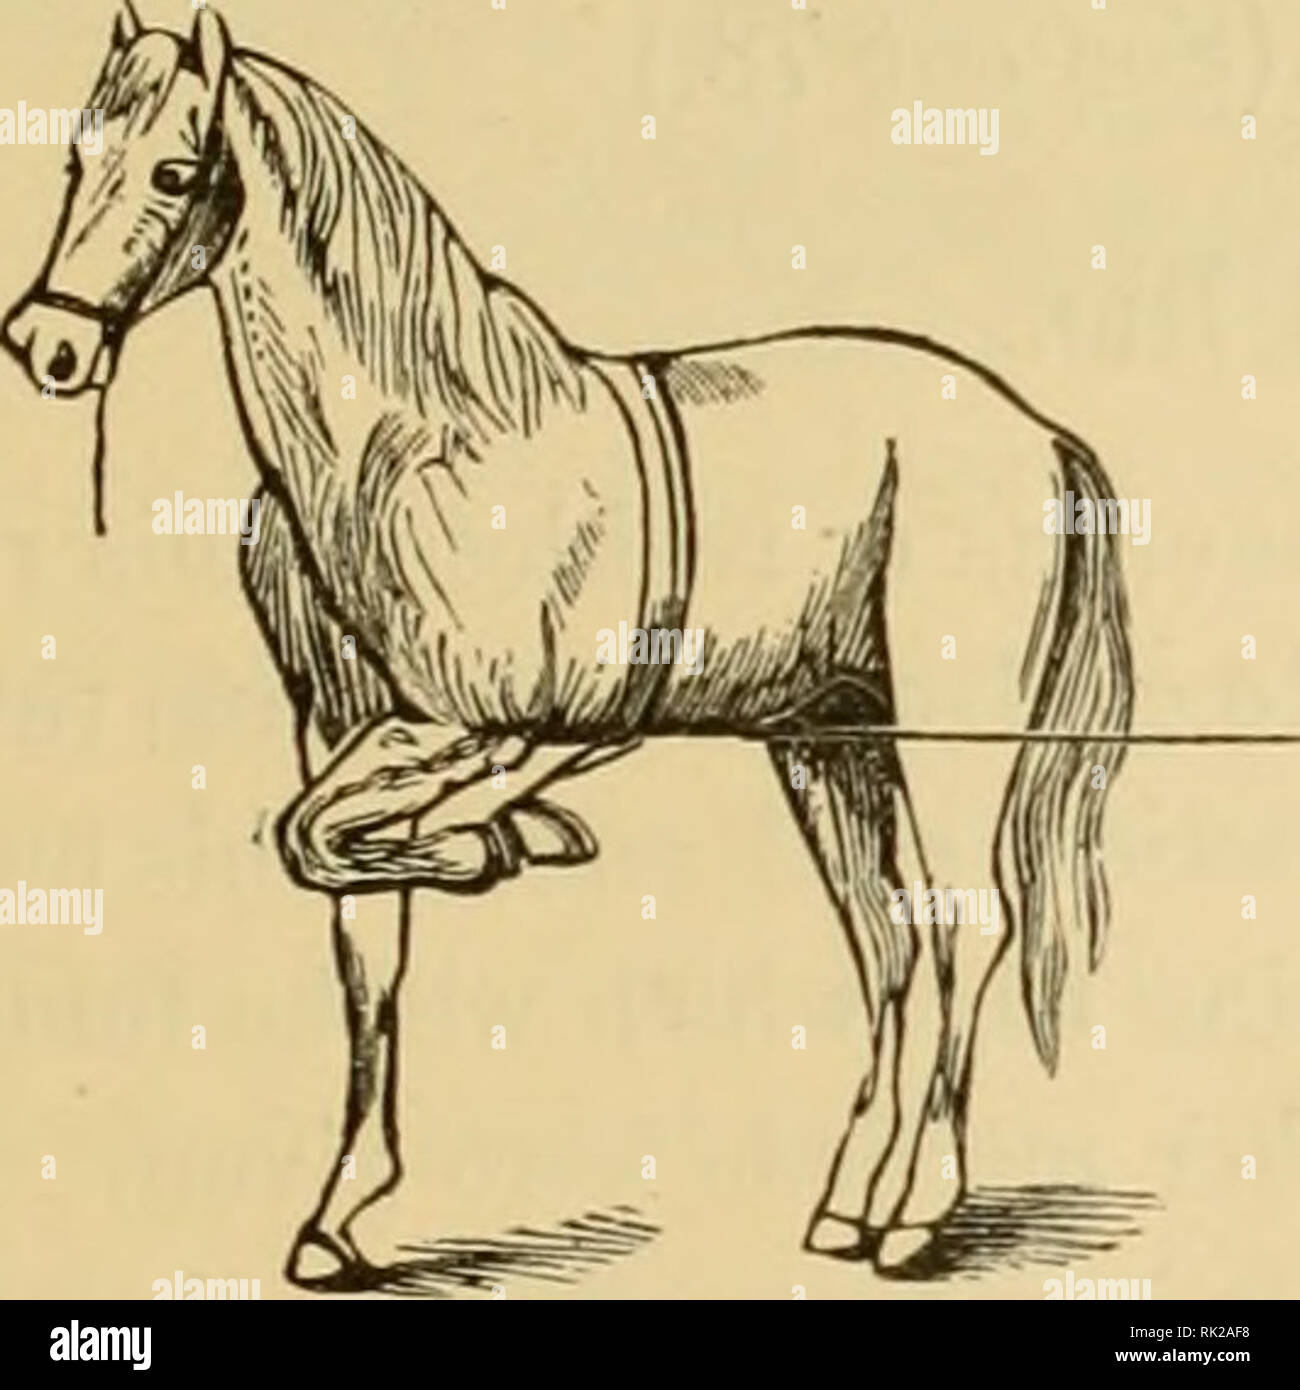 The Art Of Taming And Educating The Horse A System That Makes Easy And Practical The Subjection Of Wild And Vicious Horses The Simplest Most Humane And Effective